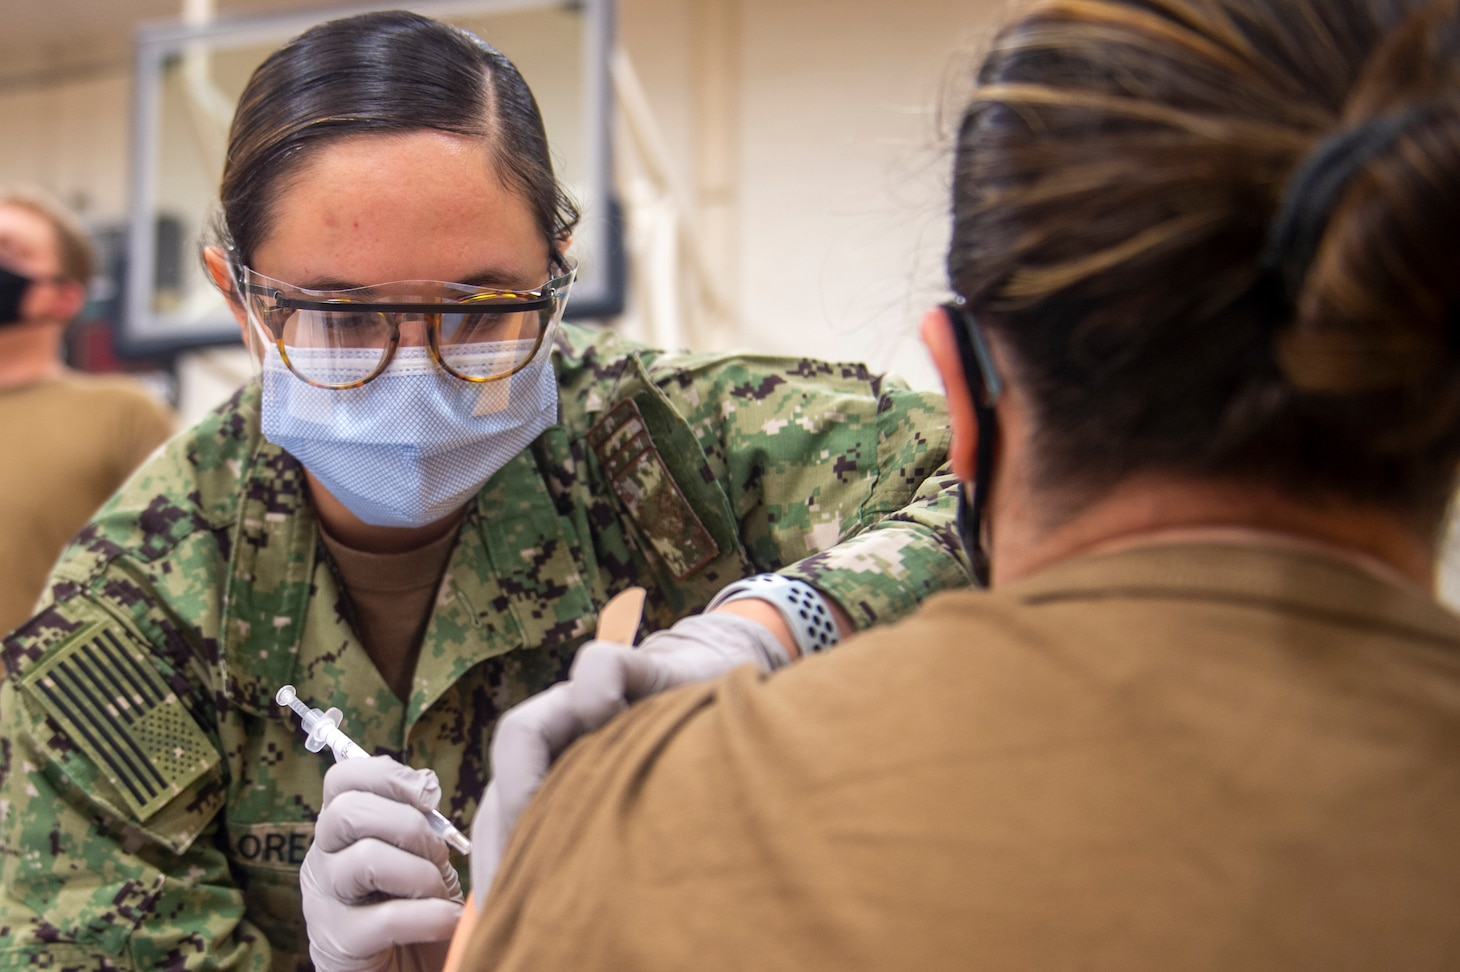 A hospital corpsman administers the COVID-19 vaccine to a Sailor onboard Naval Air Station Oceana.